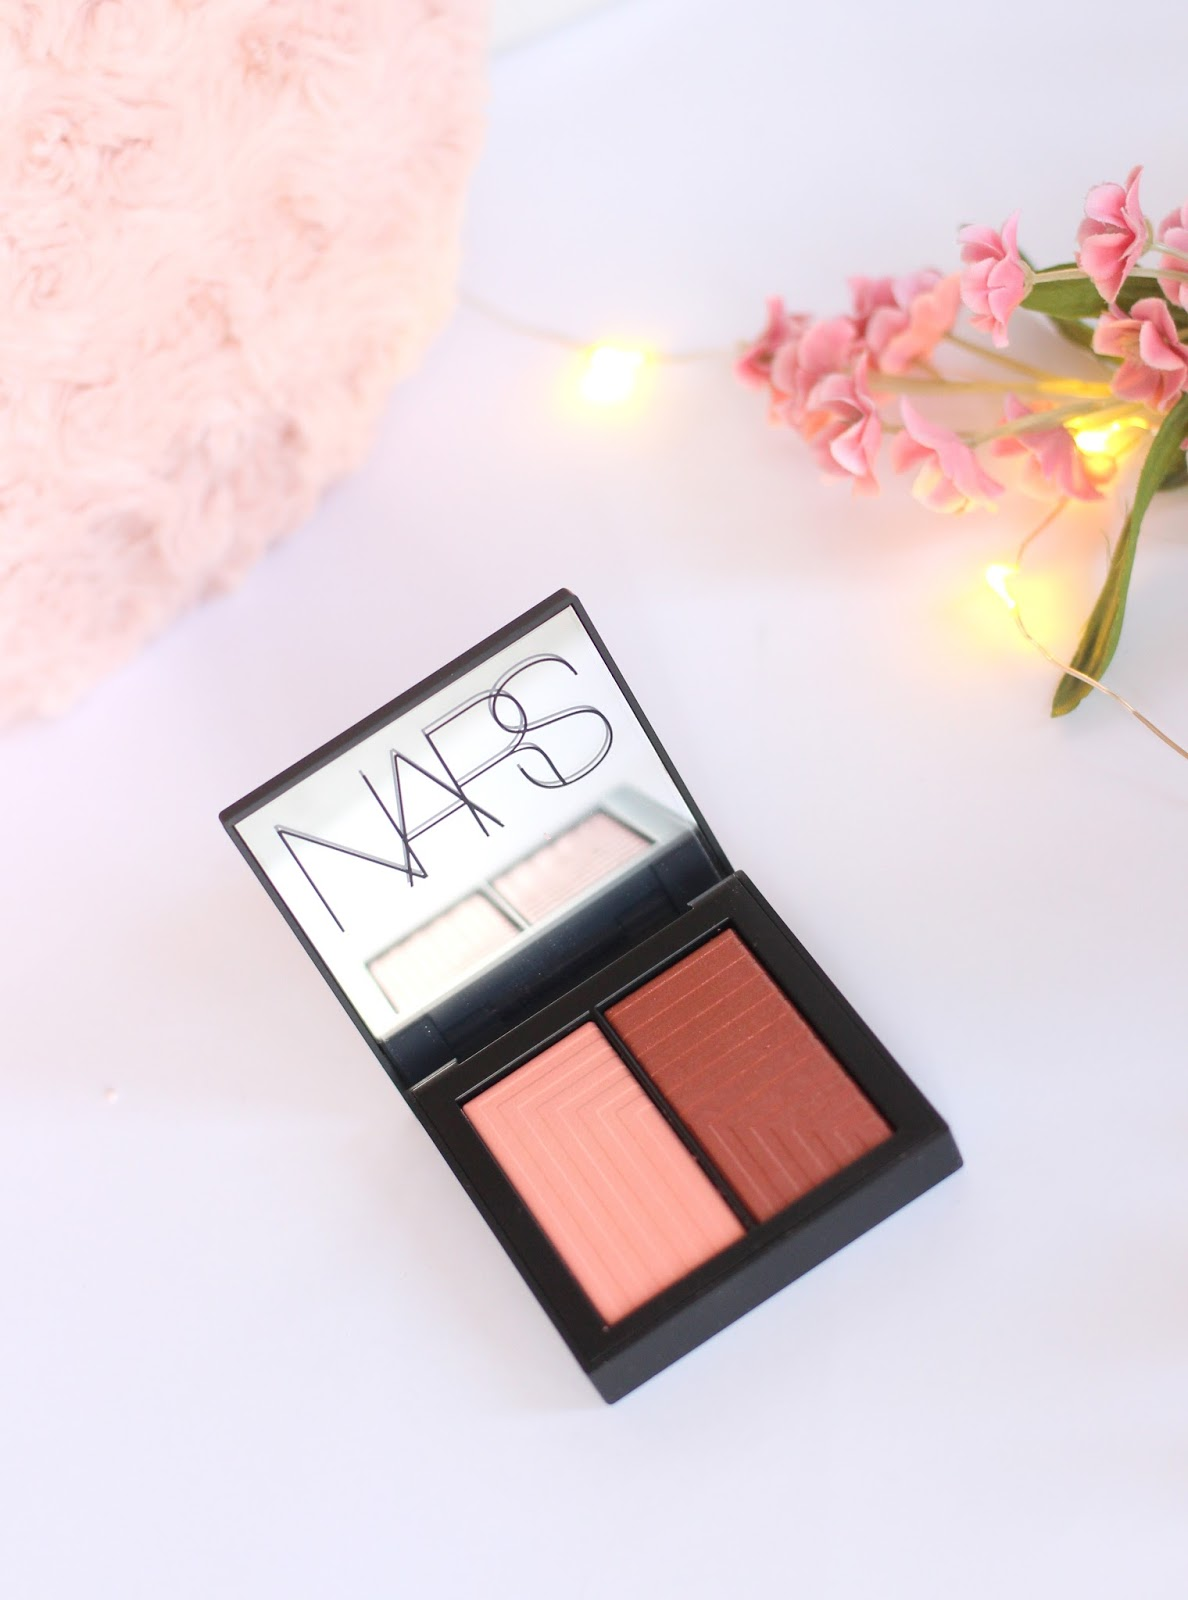 NARS Dual Intensity Blush in 'Fervor'